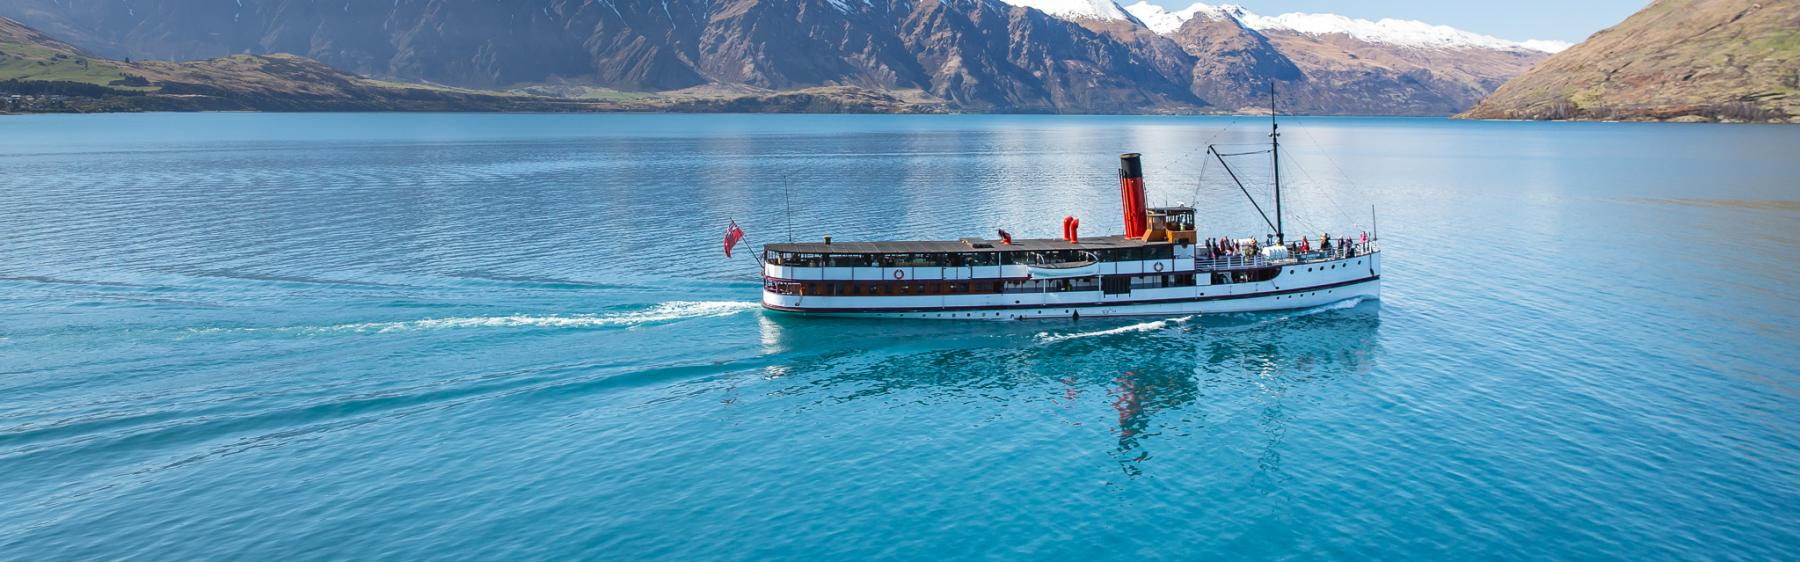 TSS Earnslaw Vintage Steamship Lake Cruise - Real Journeys Events